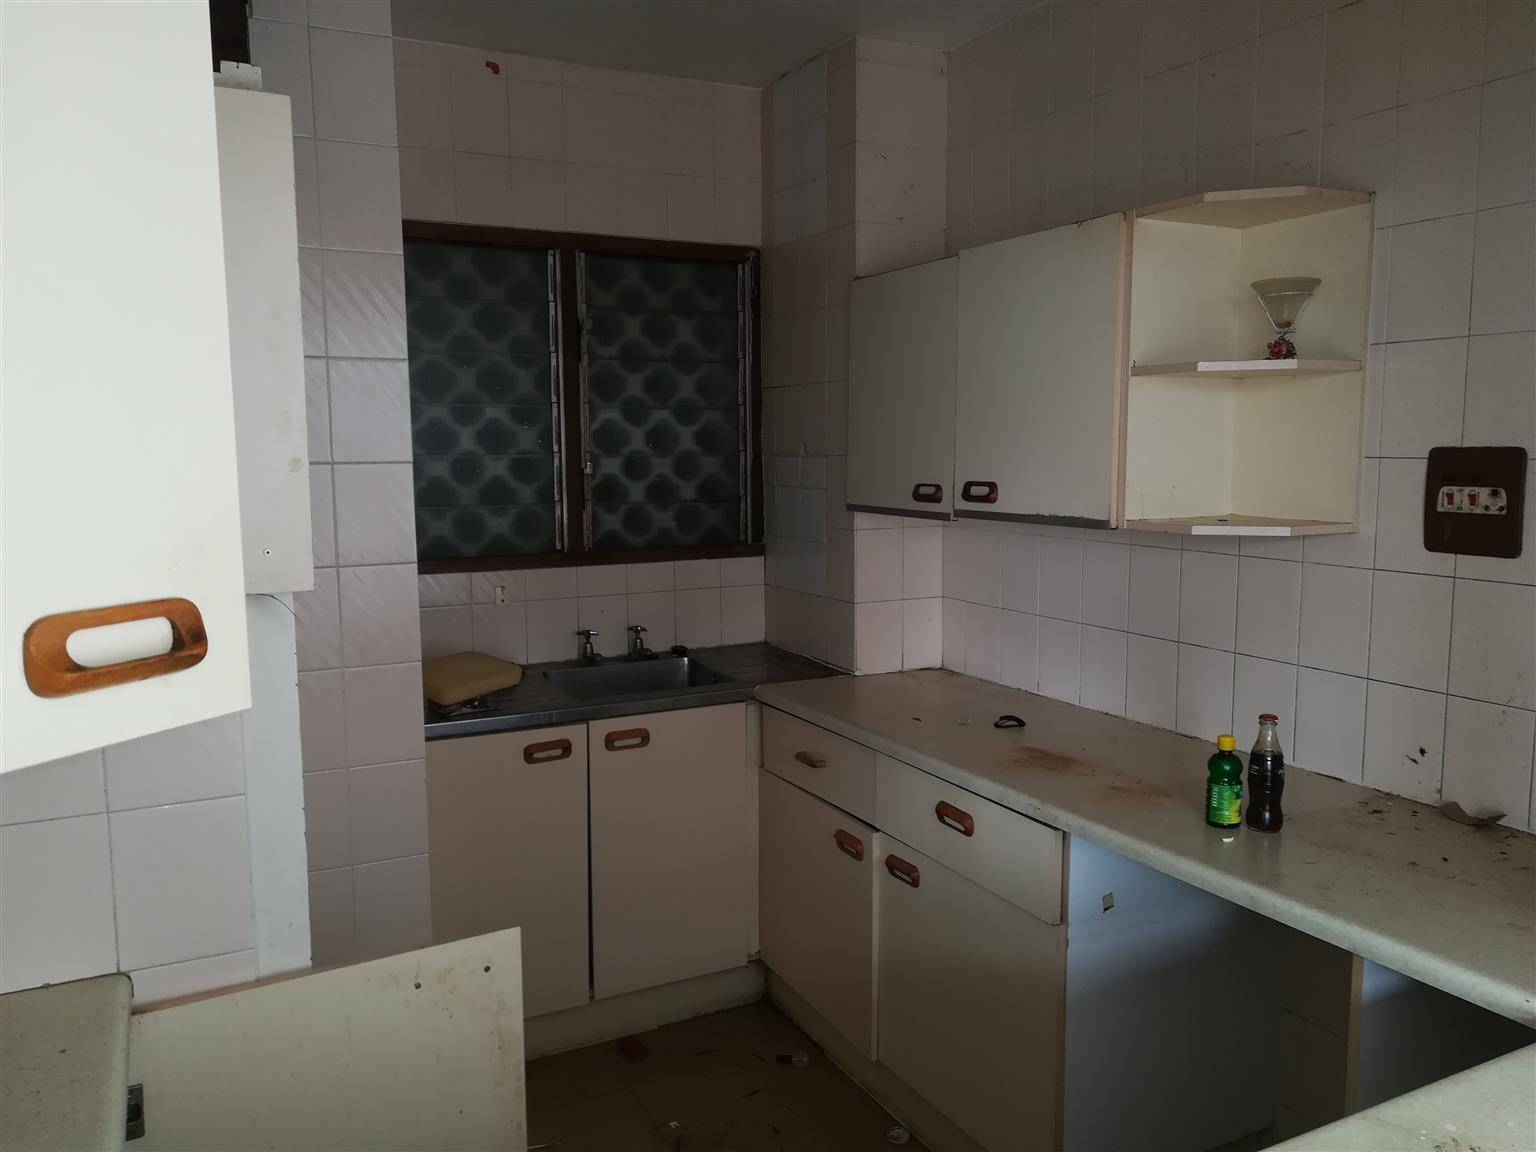 Two bedroom flat for sale in Durban No 2 Fenton Road (Haven Court) Flat no 1502